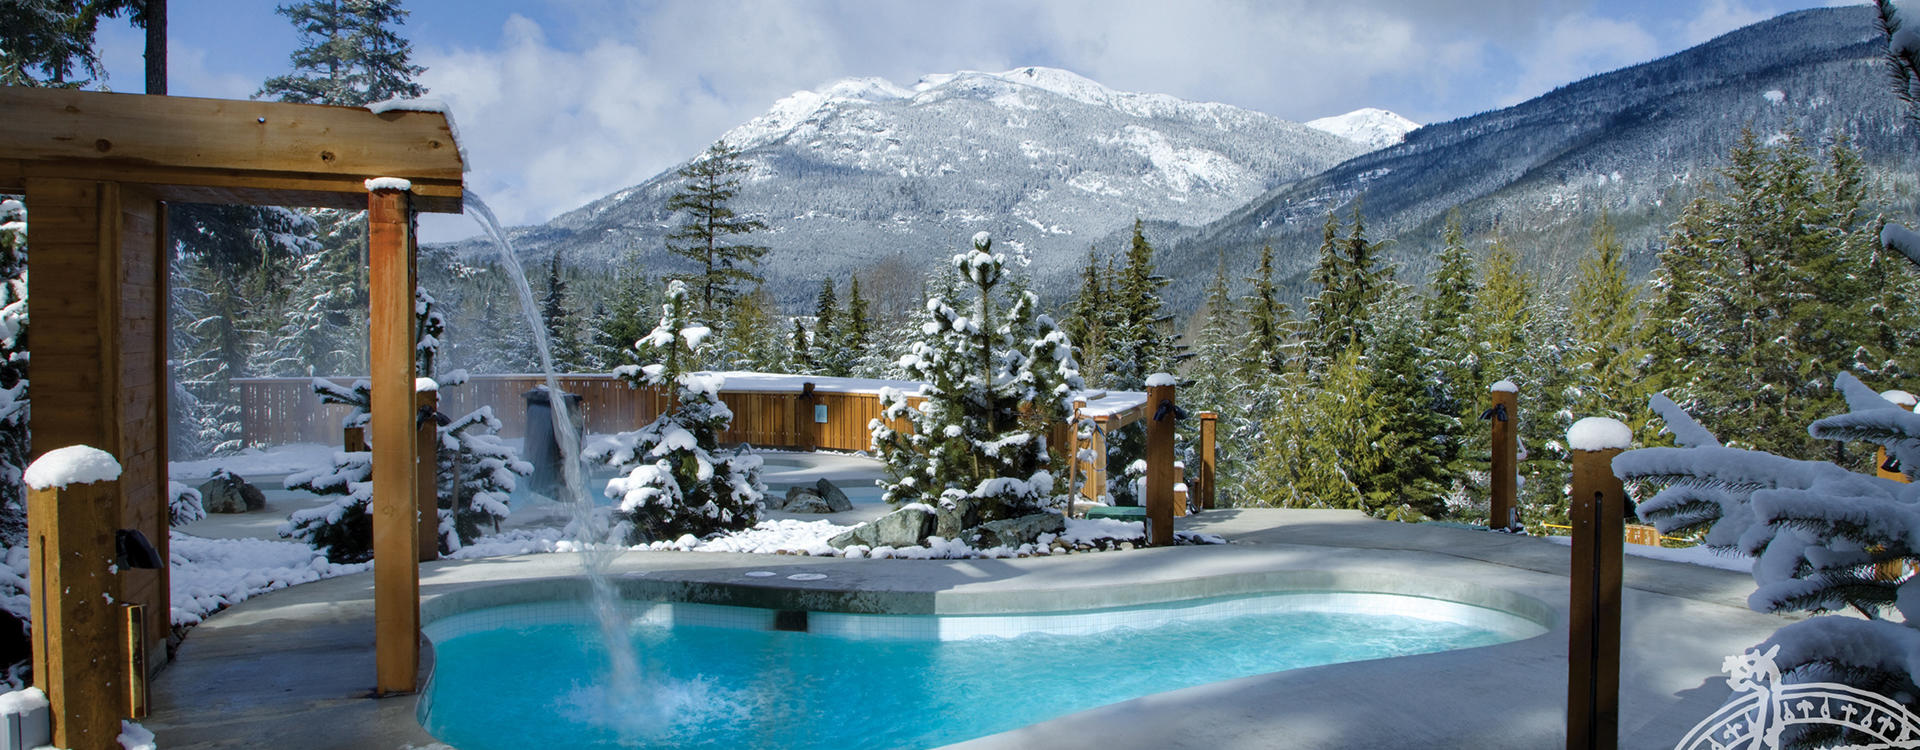 PP-Whistler-Mountainside_Scandinavian-Bath-Experience